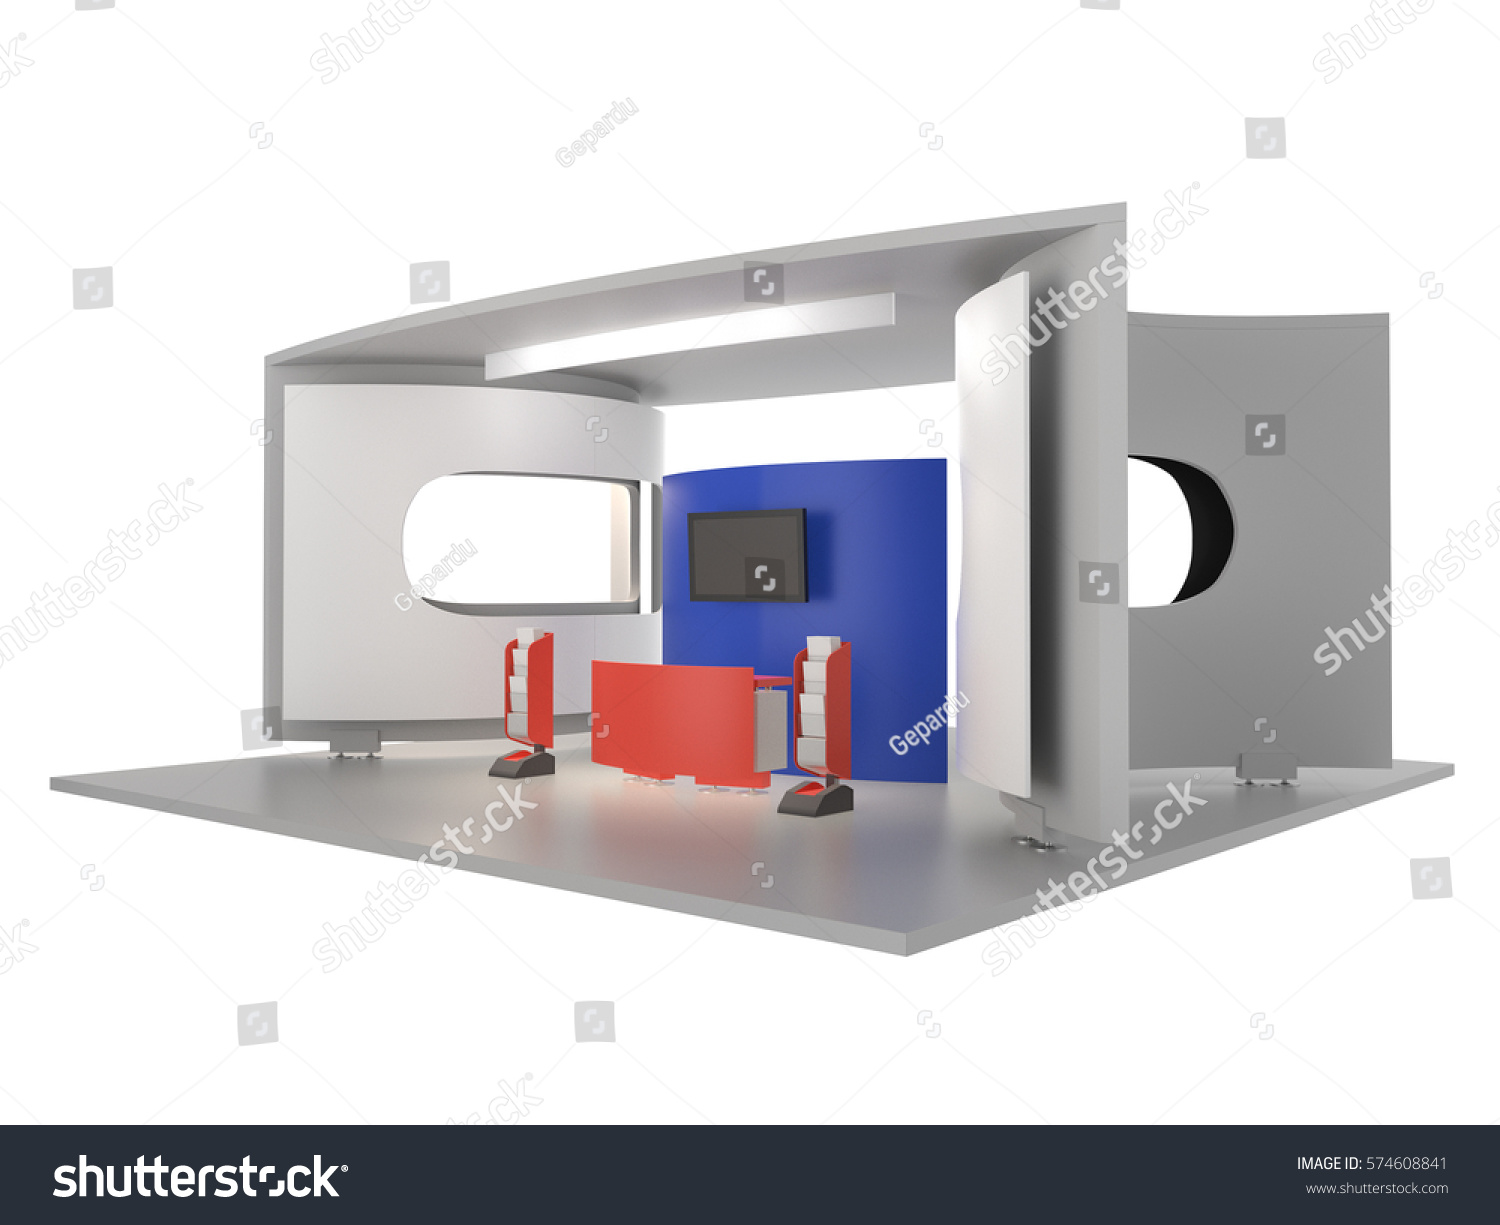 Exhibition Stall Mockup : Blue red white stand stall mockup stock illustration